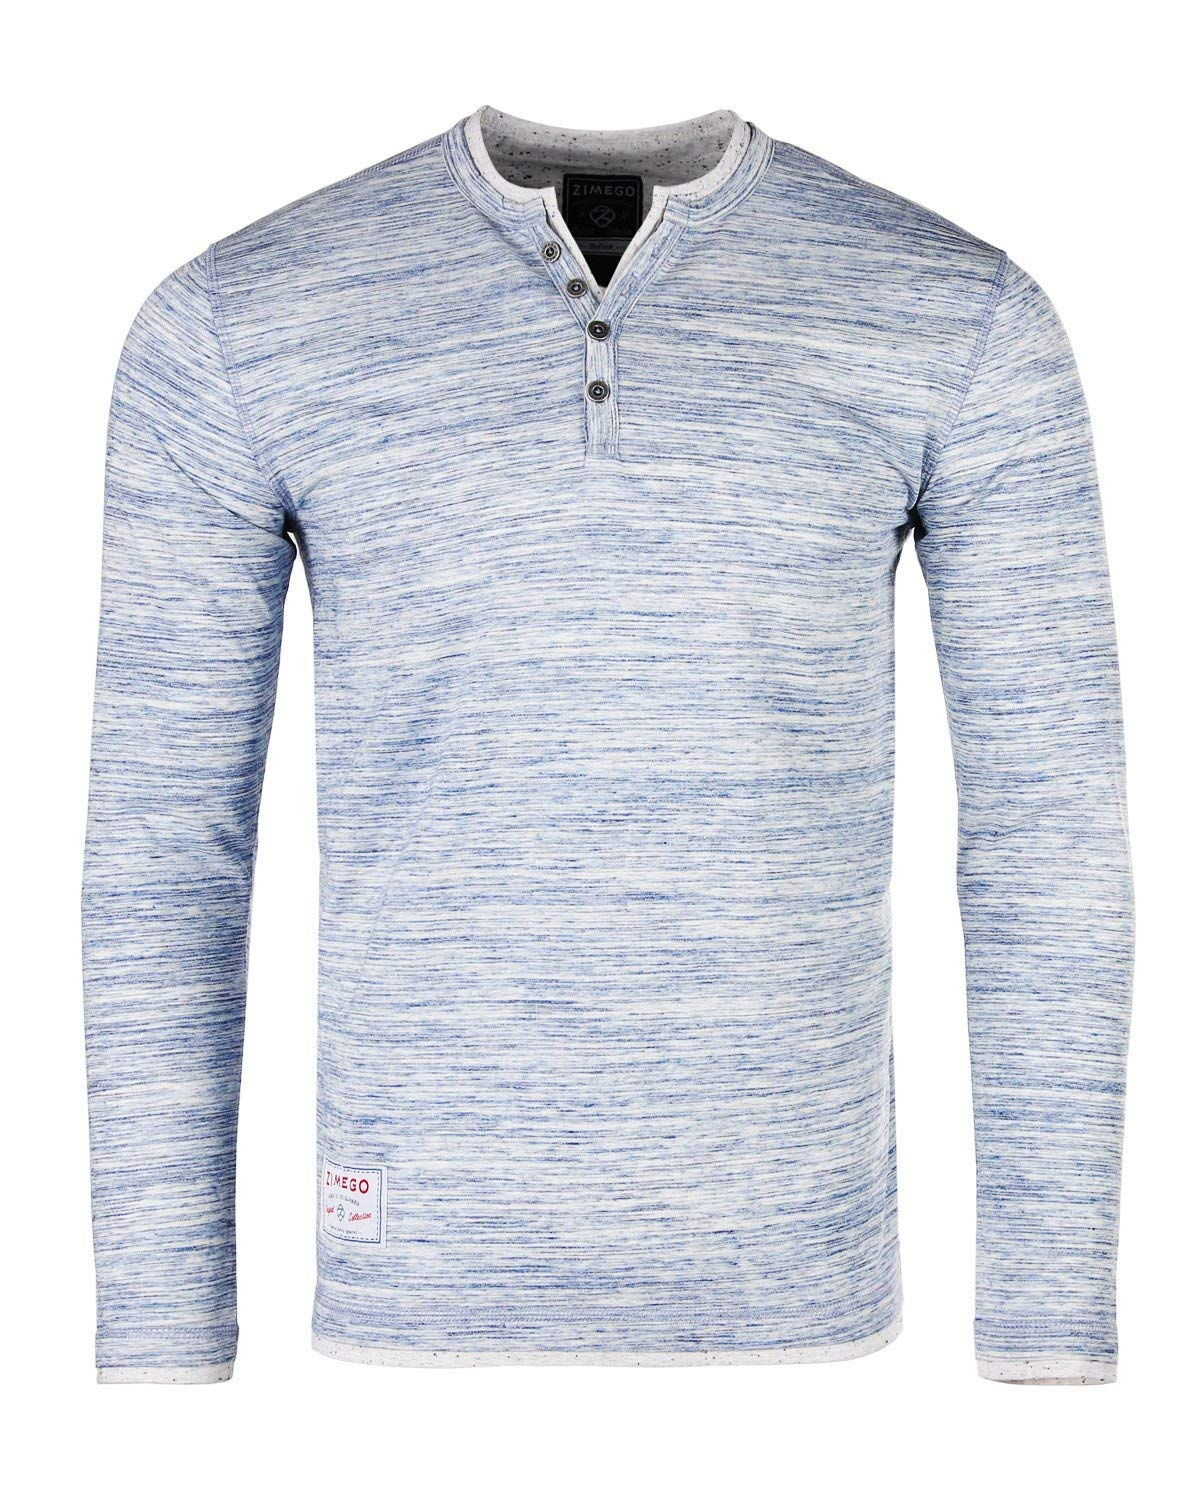 ZIMEGO Men's Long Sleeve Fashion Casual Henley Shirt with Contrast Layer V-Neck and Hemlines